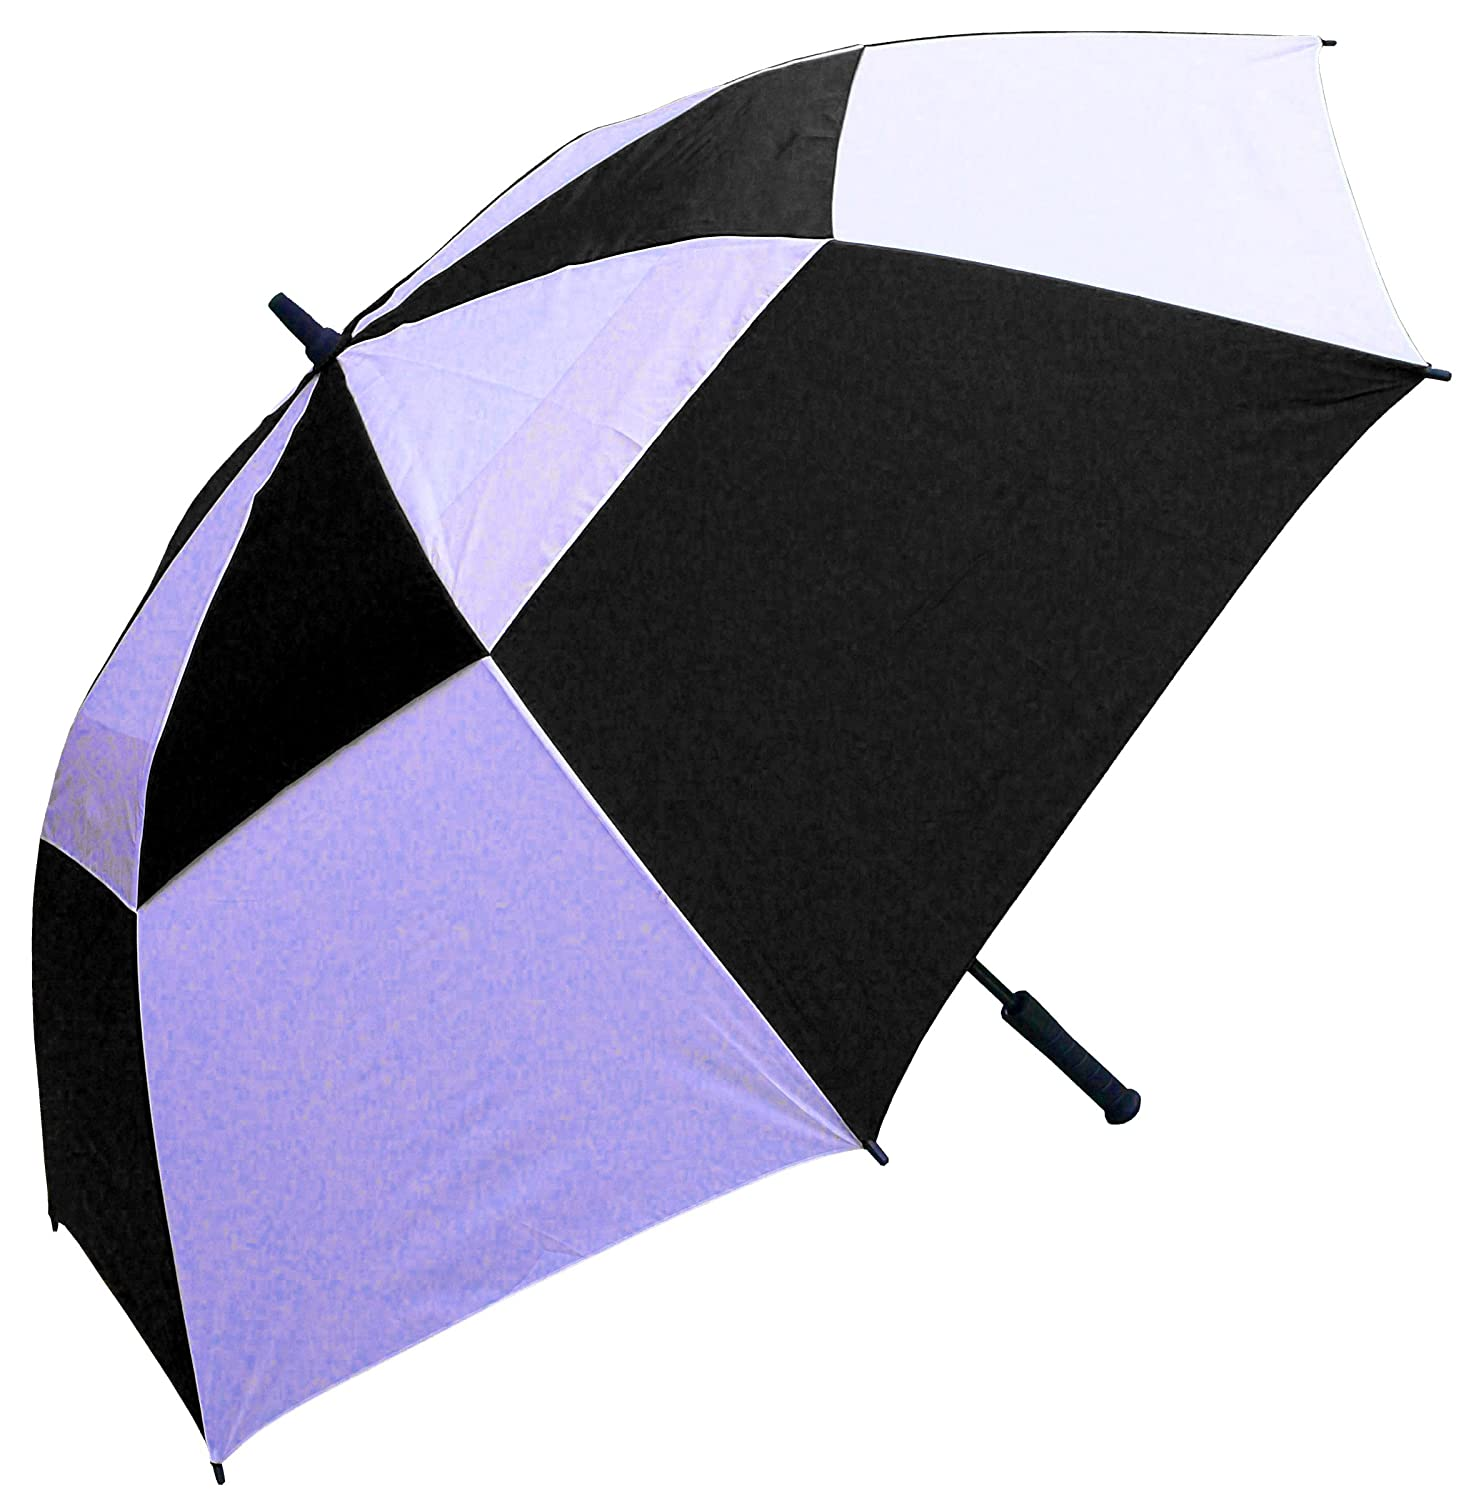 Amazon.com  RainStoppers 62-Inch Double Canopy Golf Umbrella (Black and White)  Sports u0026 Outdoors  sc 1 st  Amazon.com & Amazon.com : RainStoppers 62-Inch Double Canopy Golf Umbrella ...